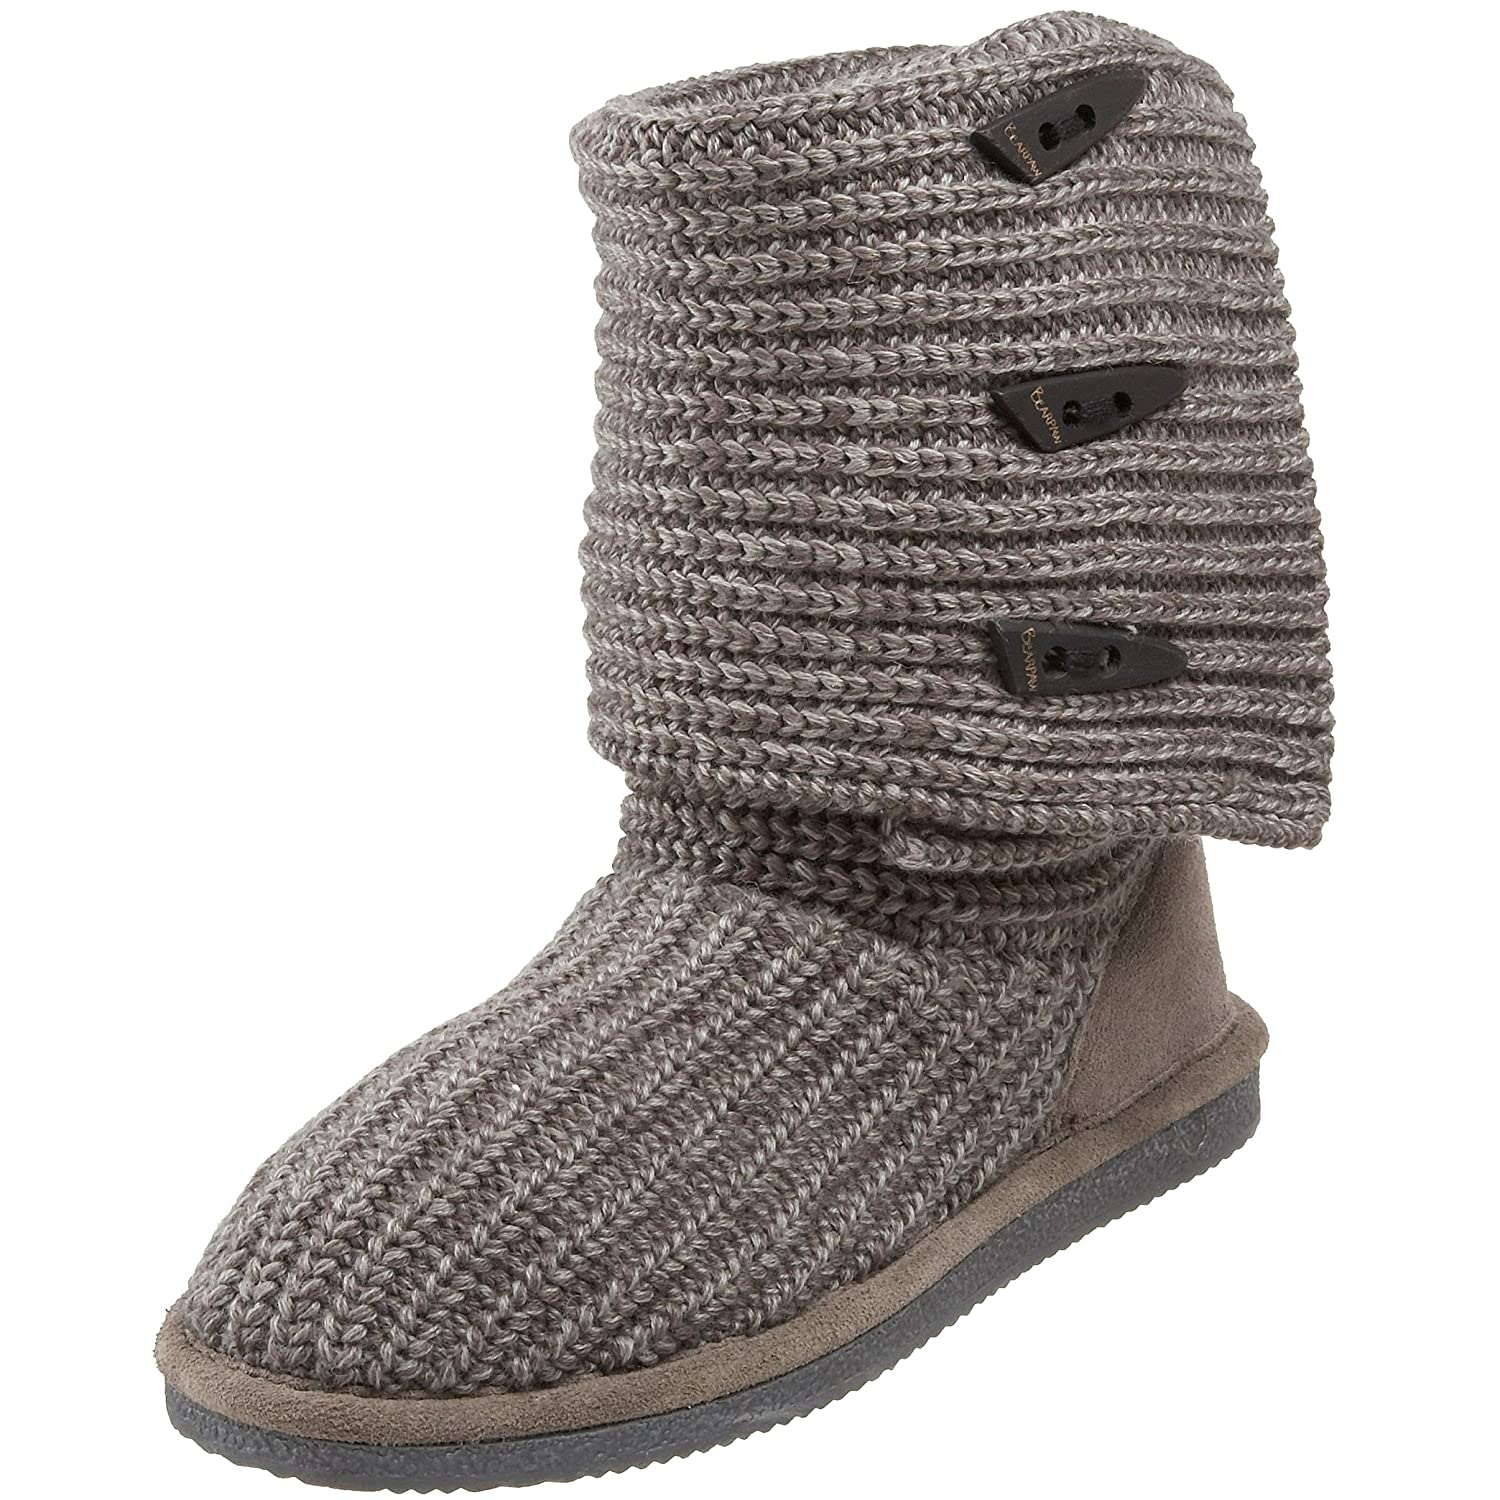 BEARPAW Women's Knit Tall Winter Boot B0026ZQJF2 6 B(M) US|Gray Ii